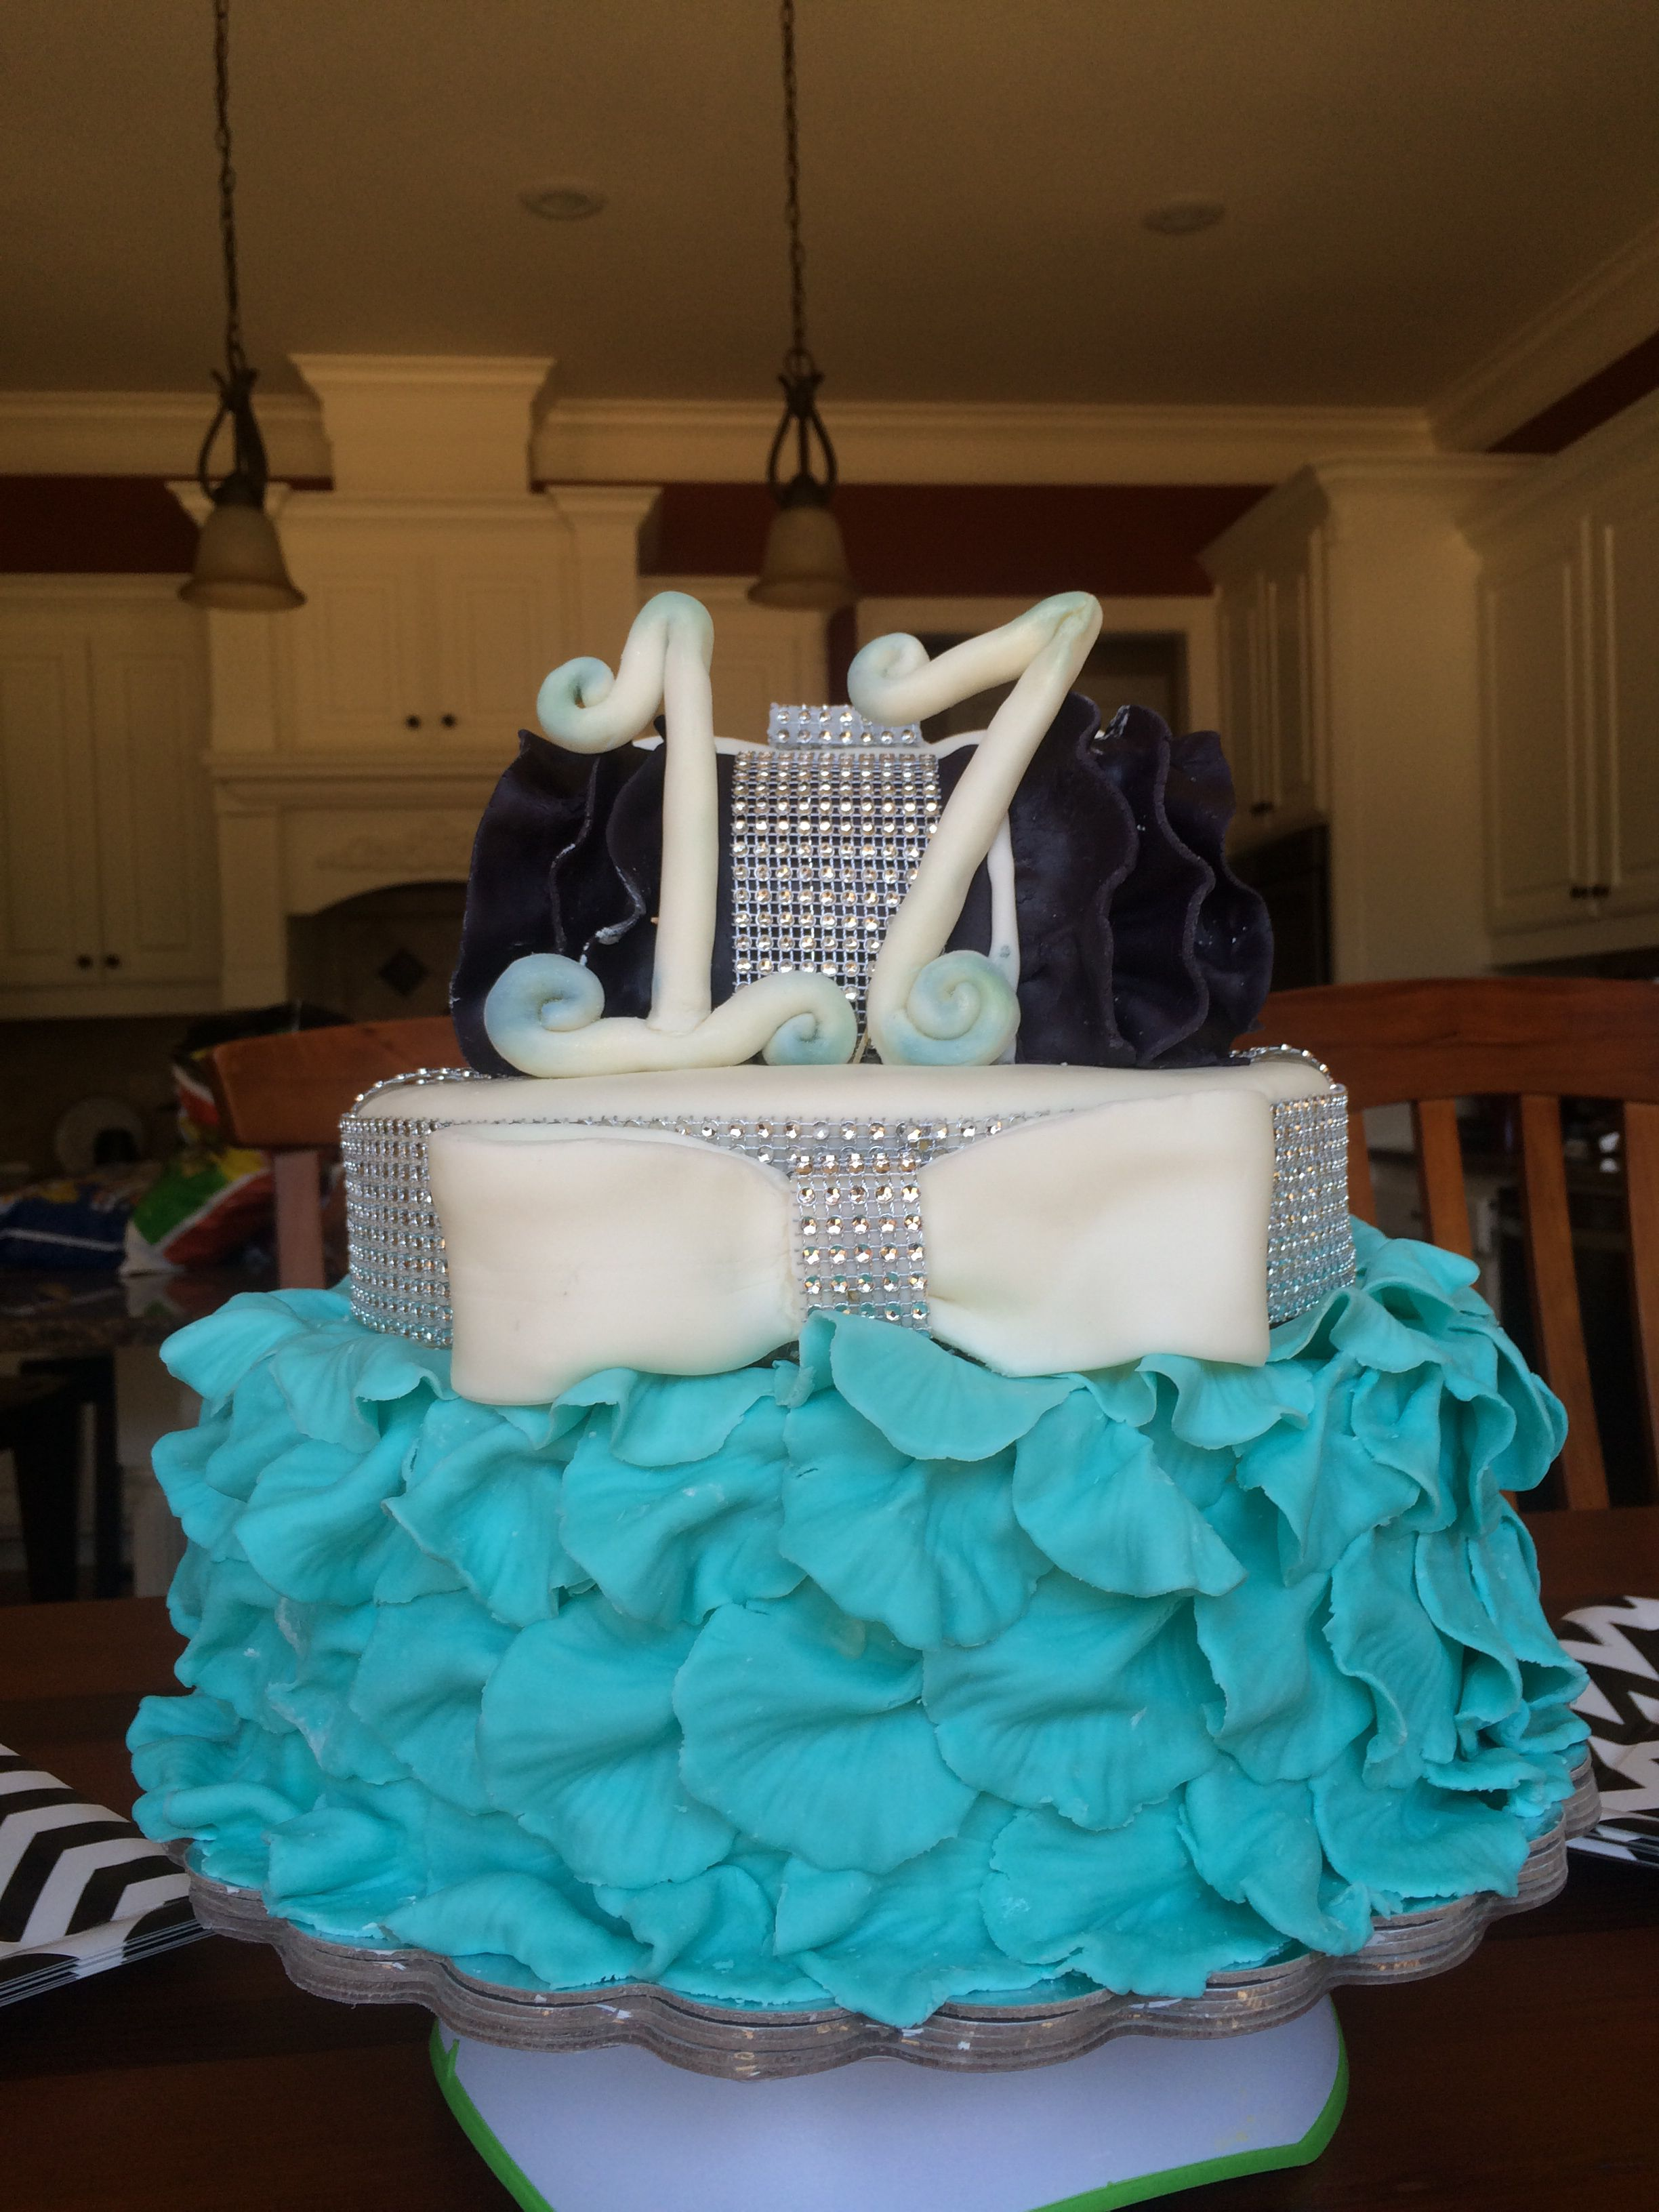 Birthday Cake with little black purse, a lot of bling and its own skirt of petals.